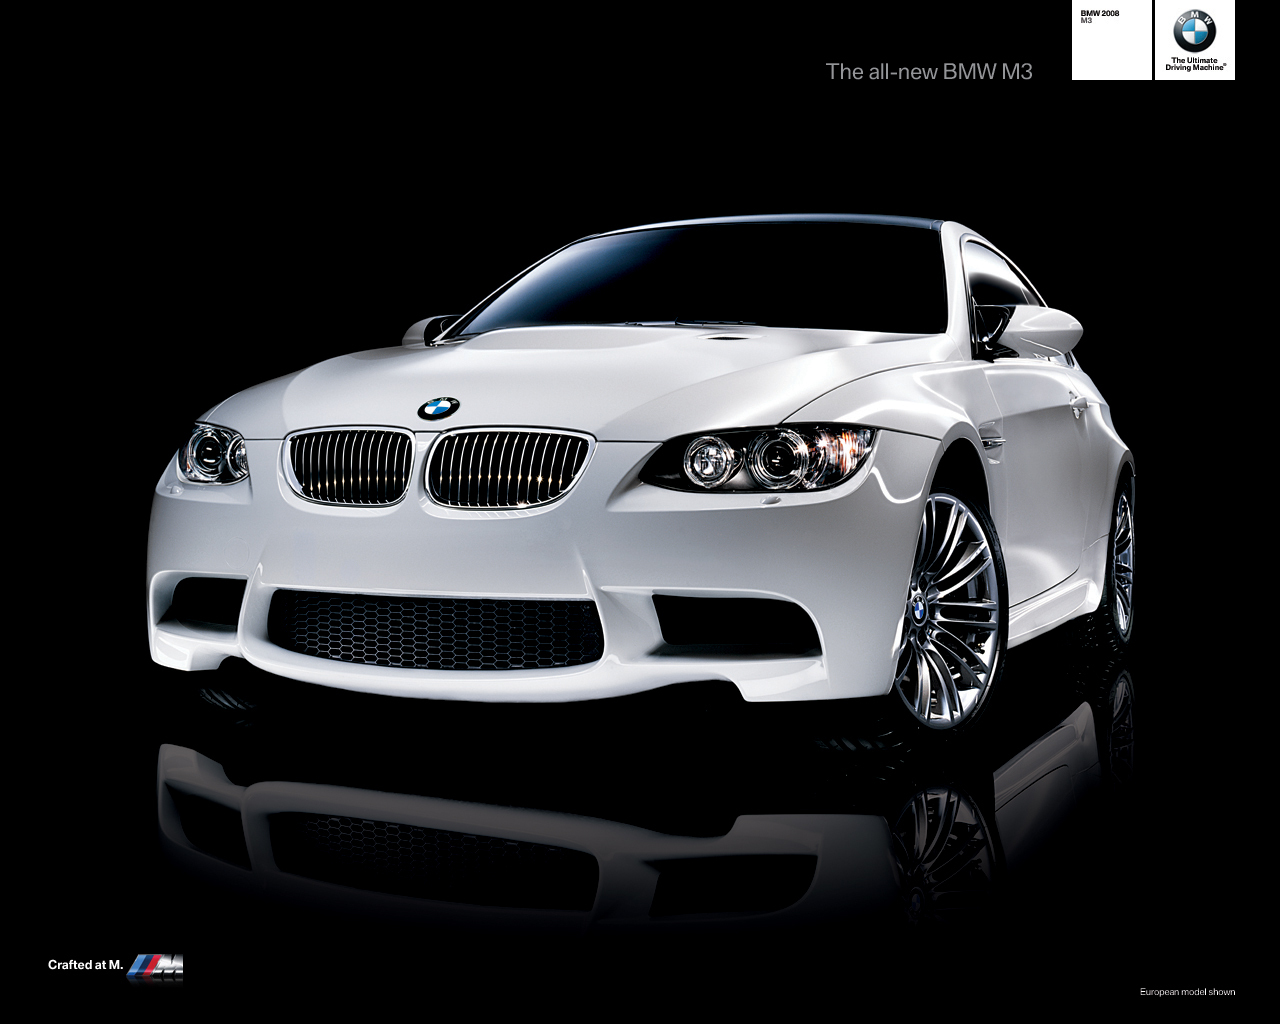 Marvelous BMW Sports Car List Of Bmw Vehicles Wikipedia The Free Encyclopedia. BMW  Sports Car Images Upload By About A Car And Filesize: 1280px   1024px